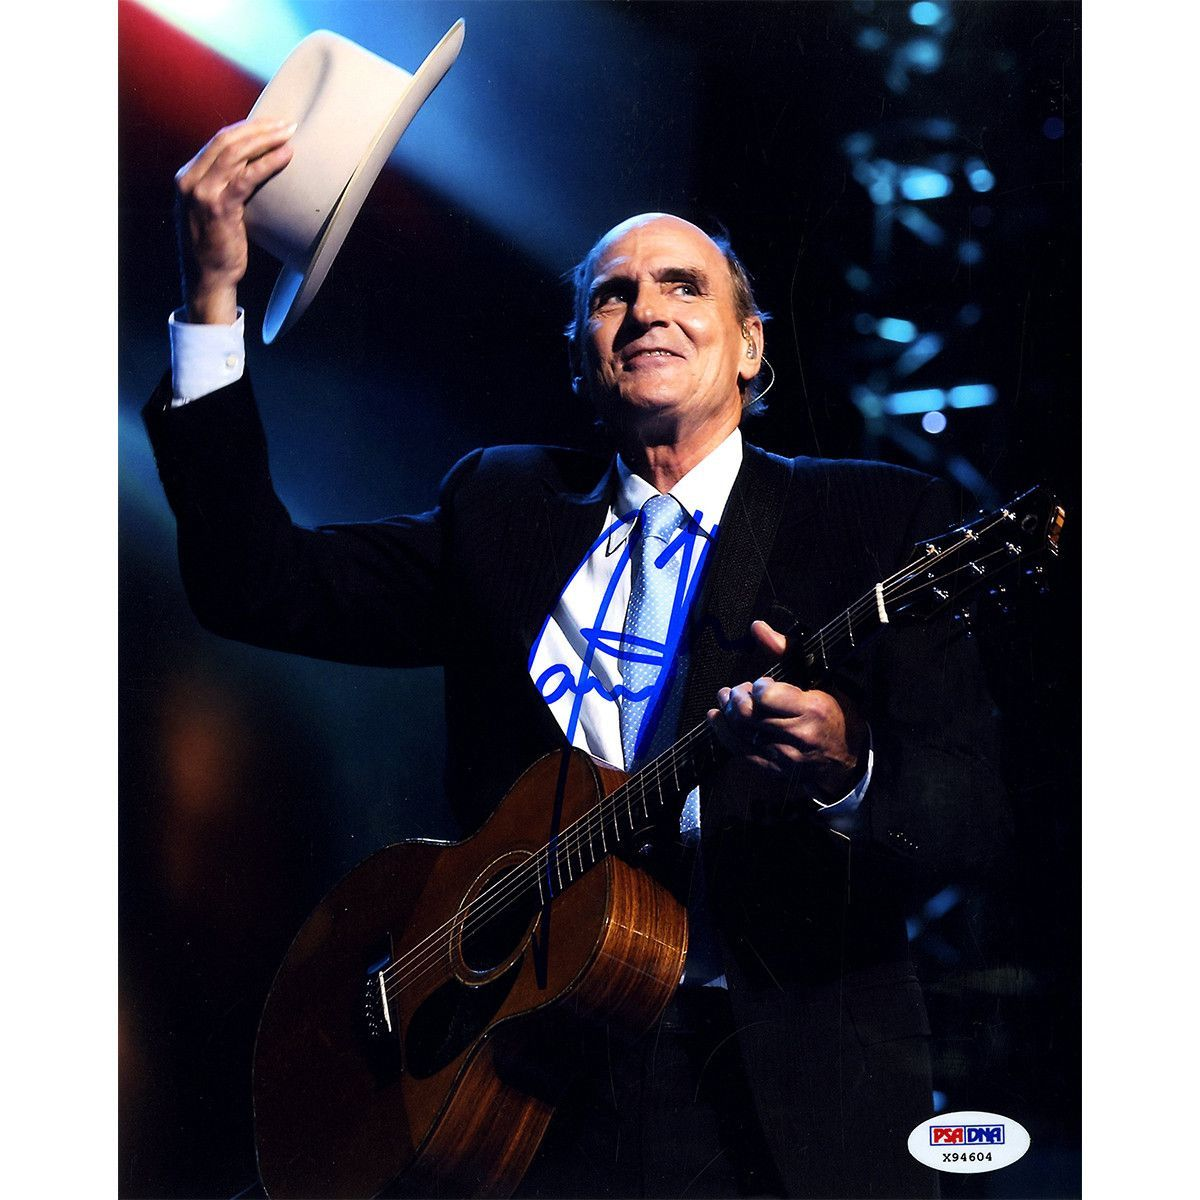 James Taylor Signed Vertical Tipping Hat 8x10 Photo (PSA